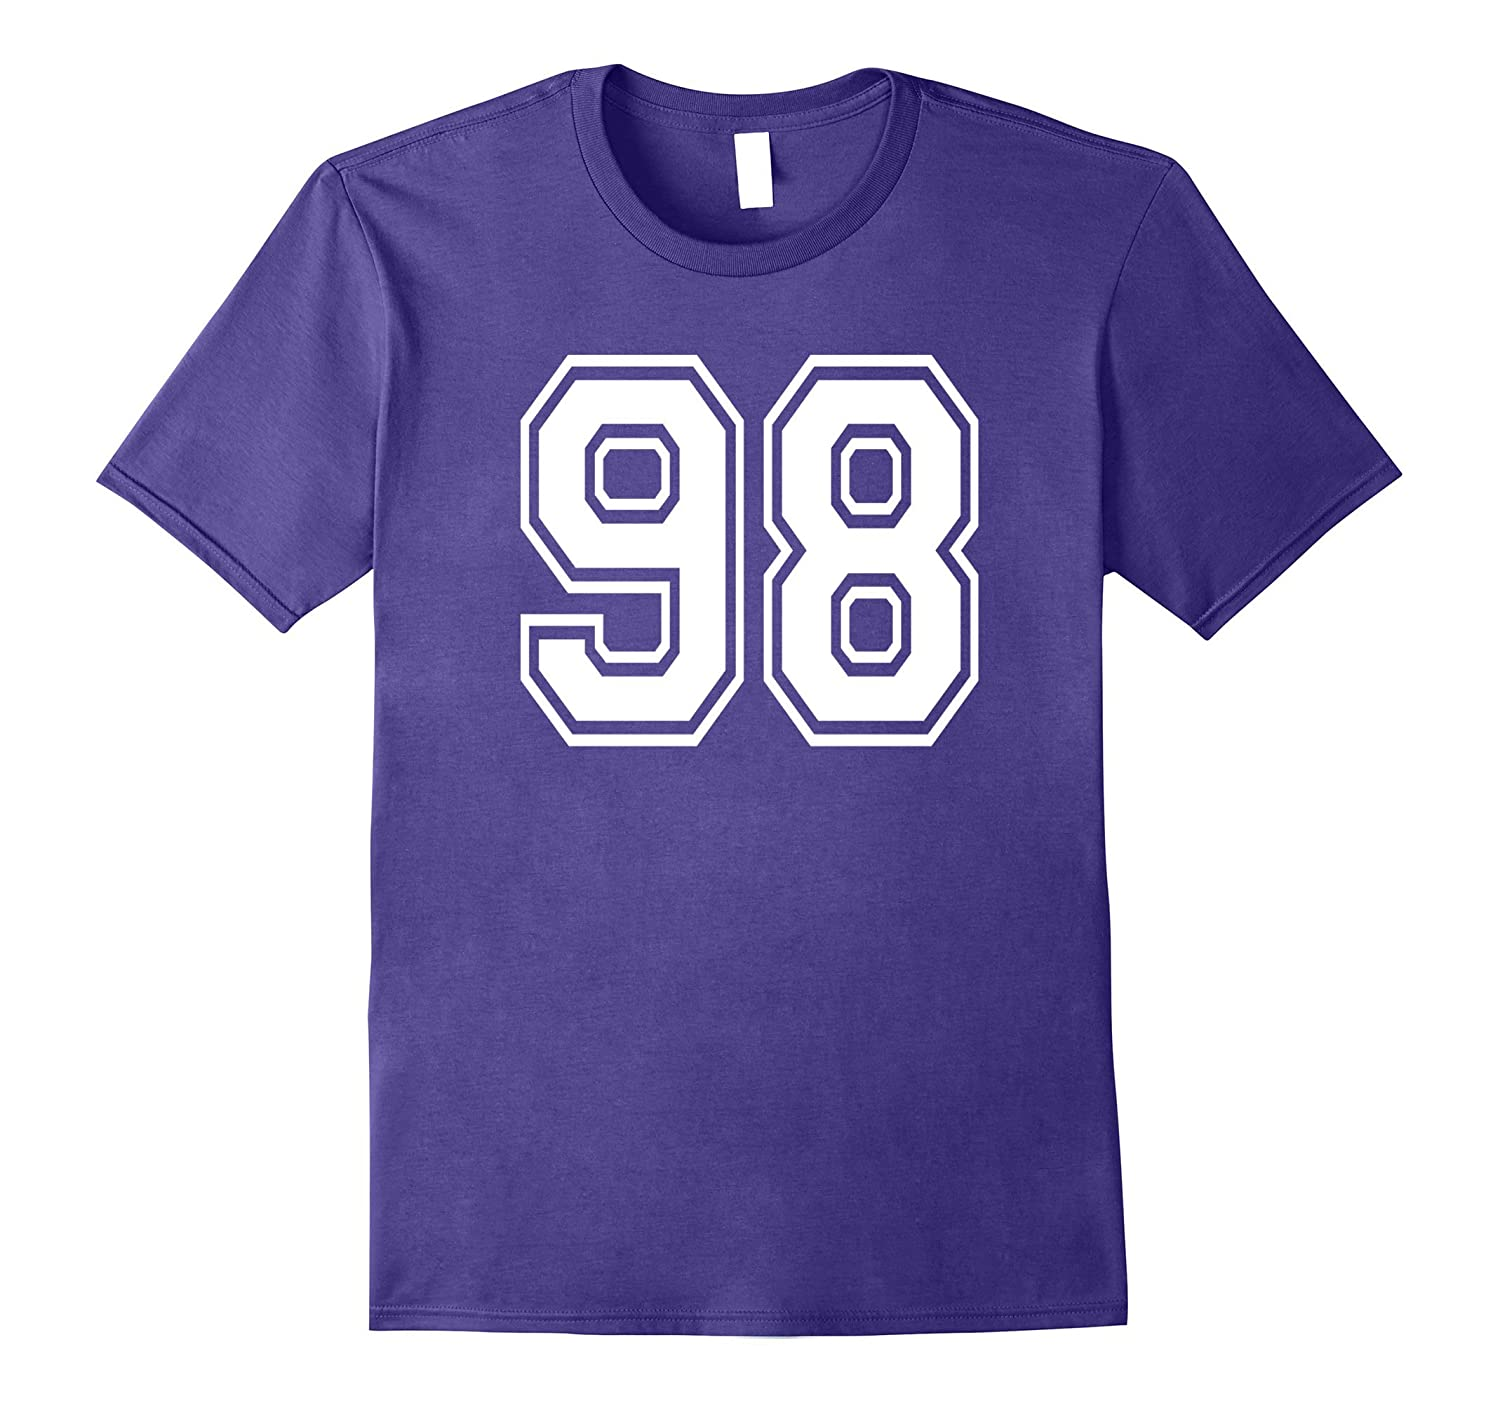 98 Sports Team School Numbers on Front T-Shirt Jersey-PL